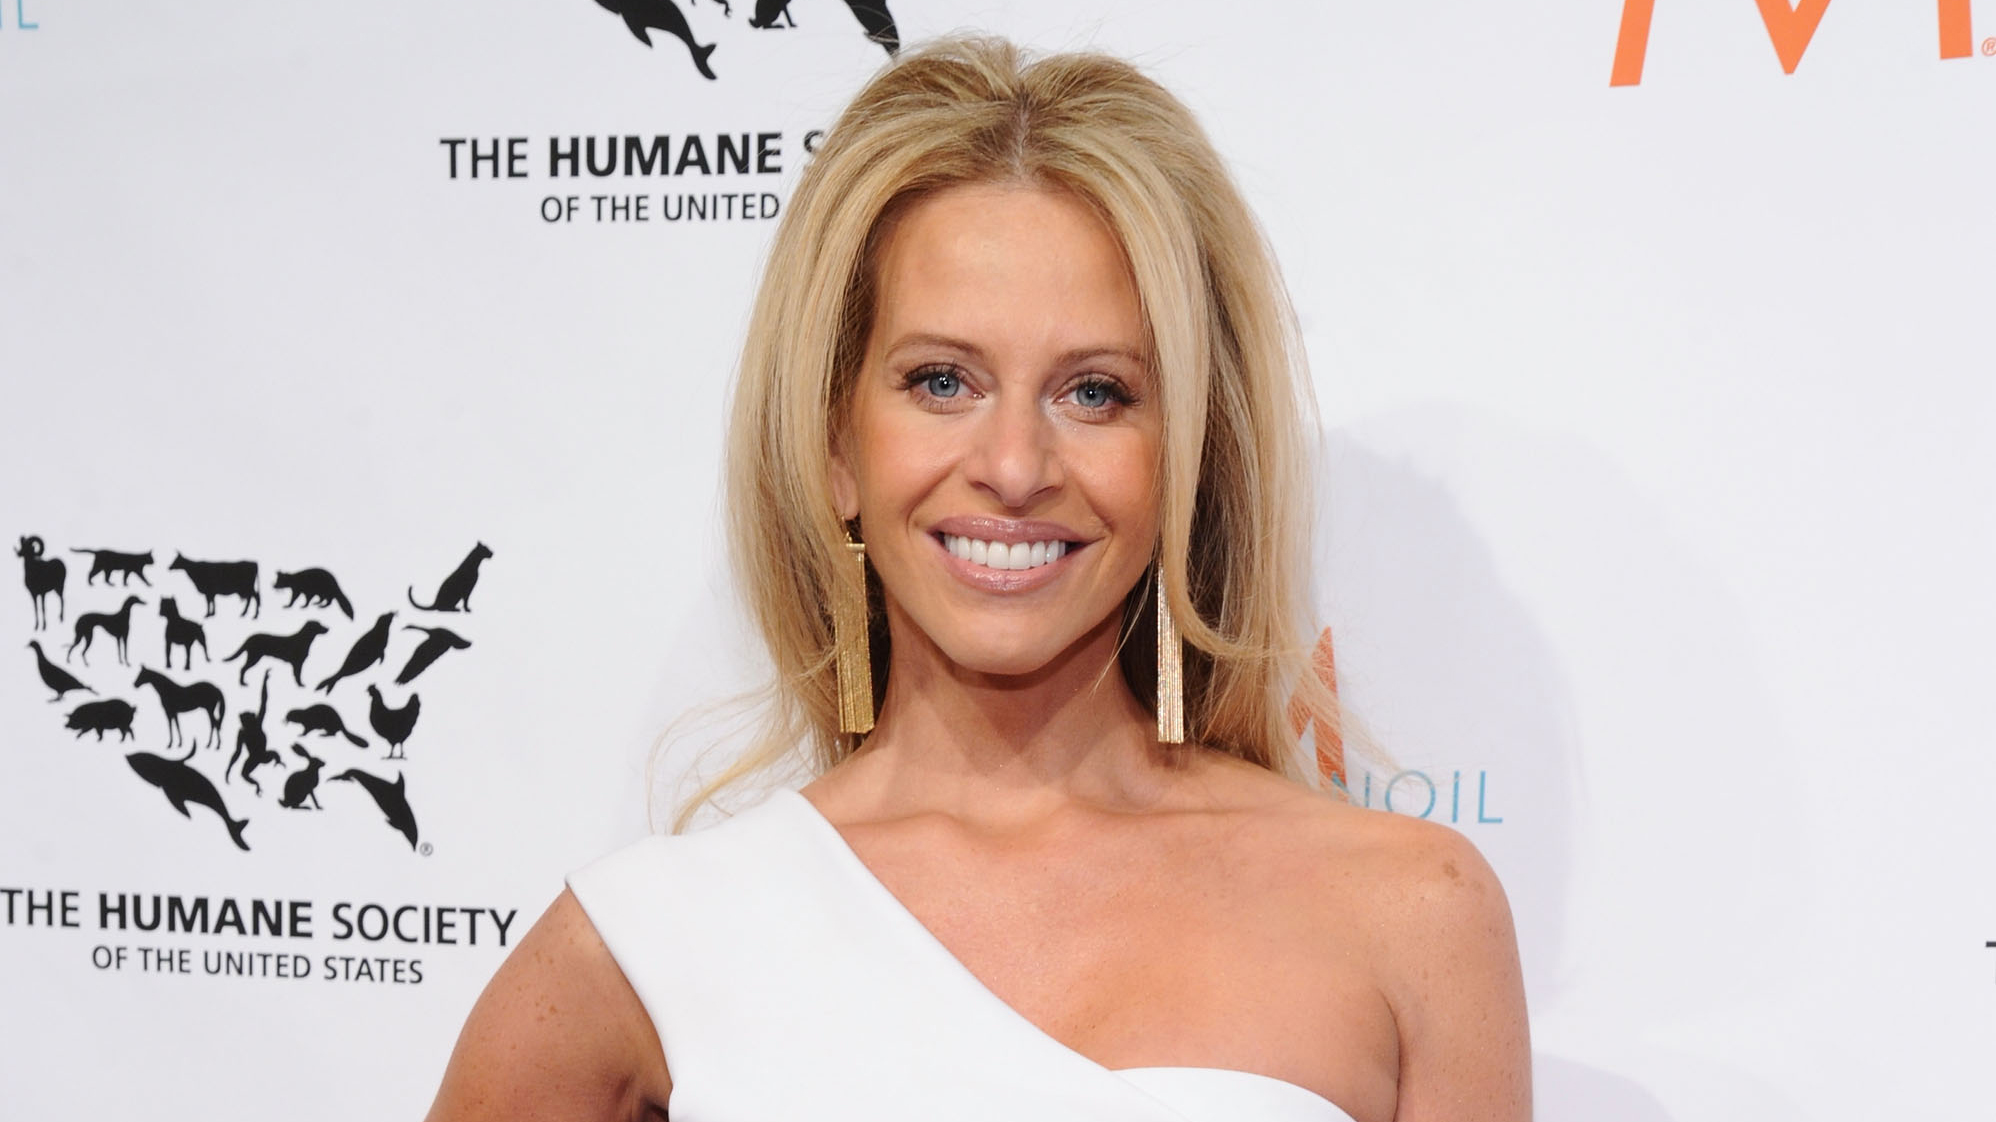 Dina Manzo's ex pleads not guilty for plotting assault against her husband, racketeering charges